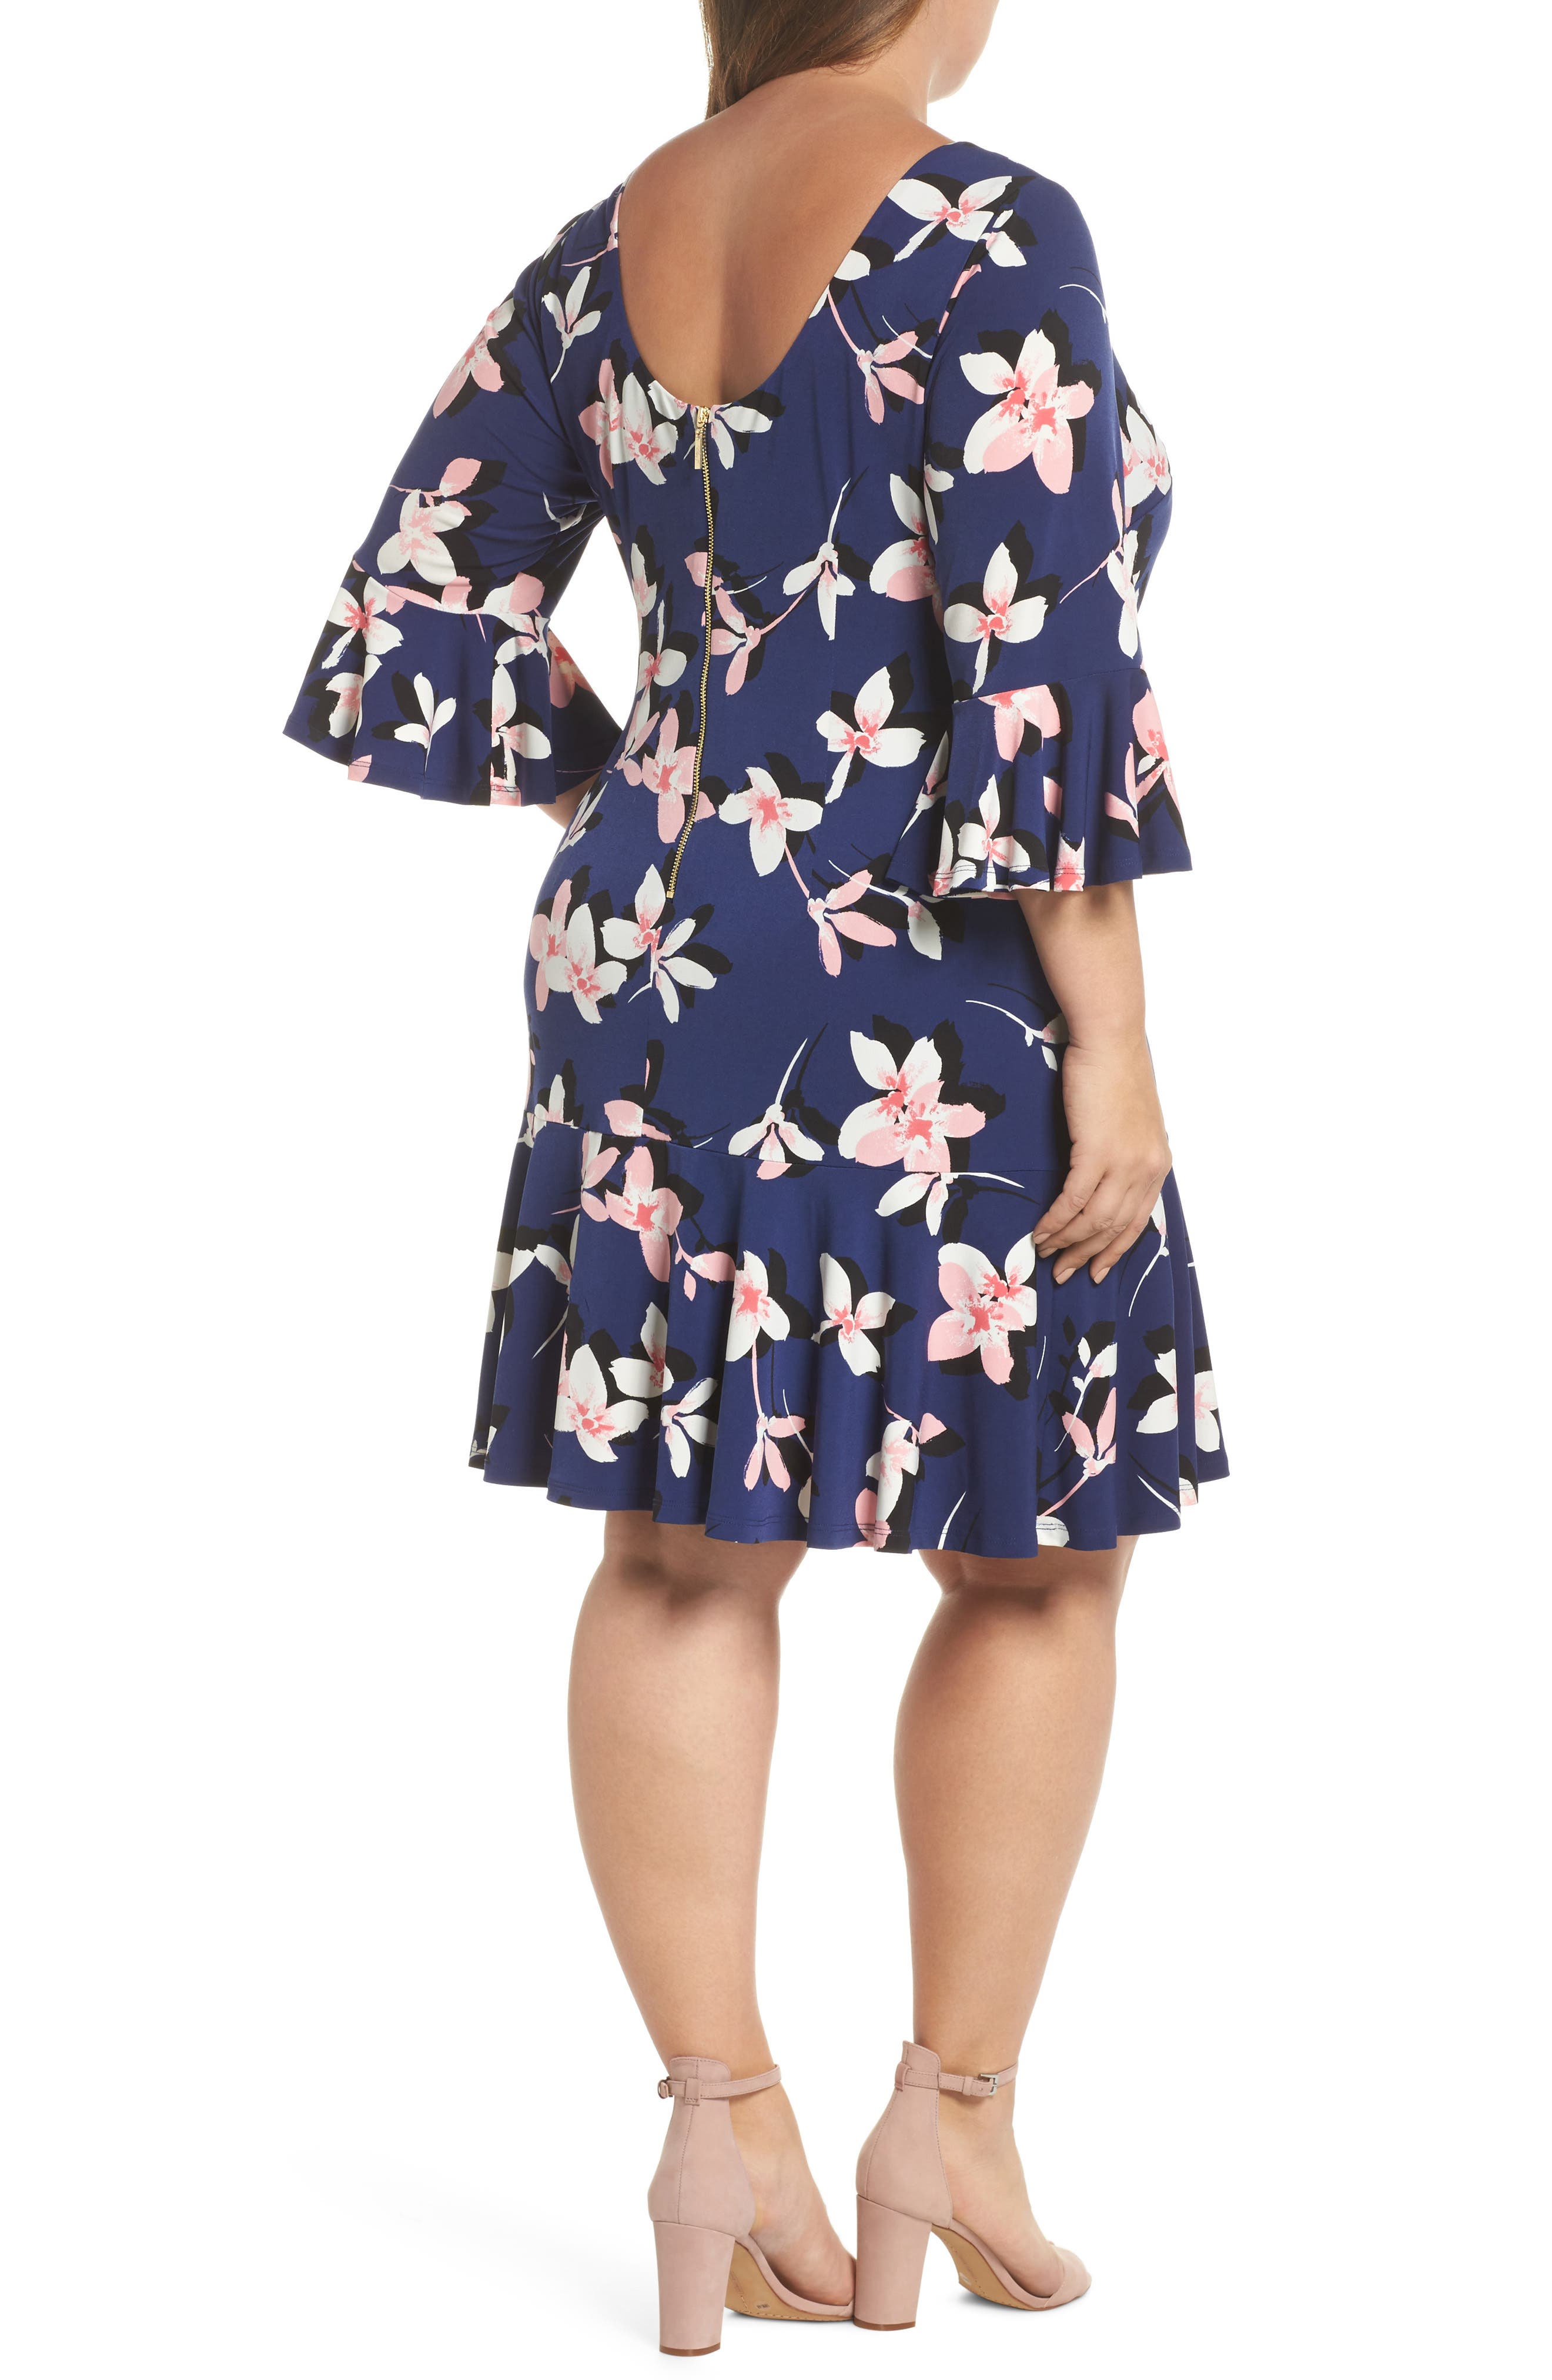 Floral Print Bell Sleeve Dress,                             Alternate thumbnail 2, color,                             Navy/ Pink